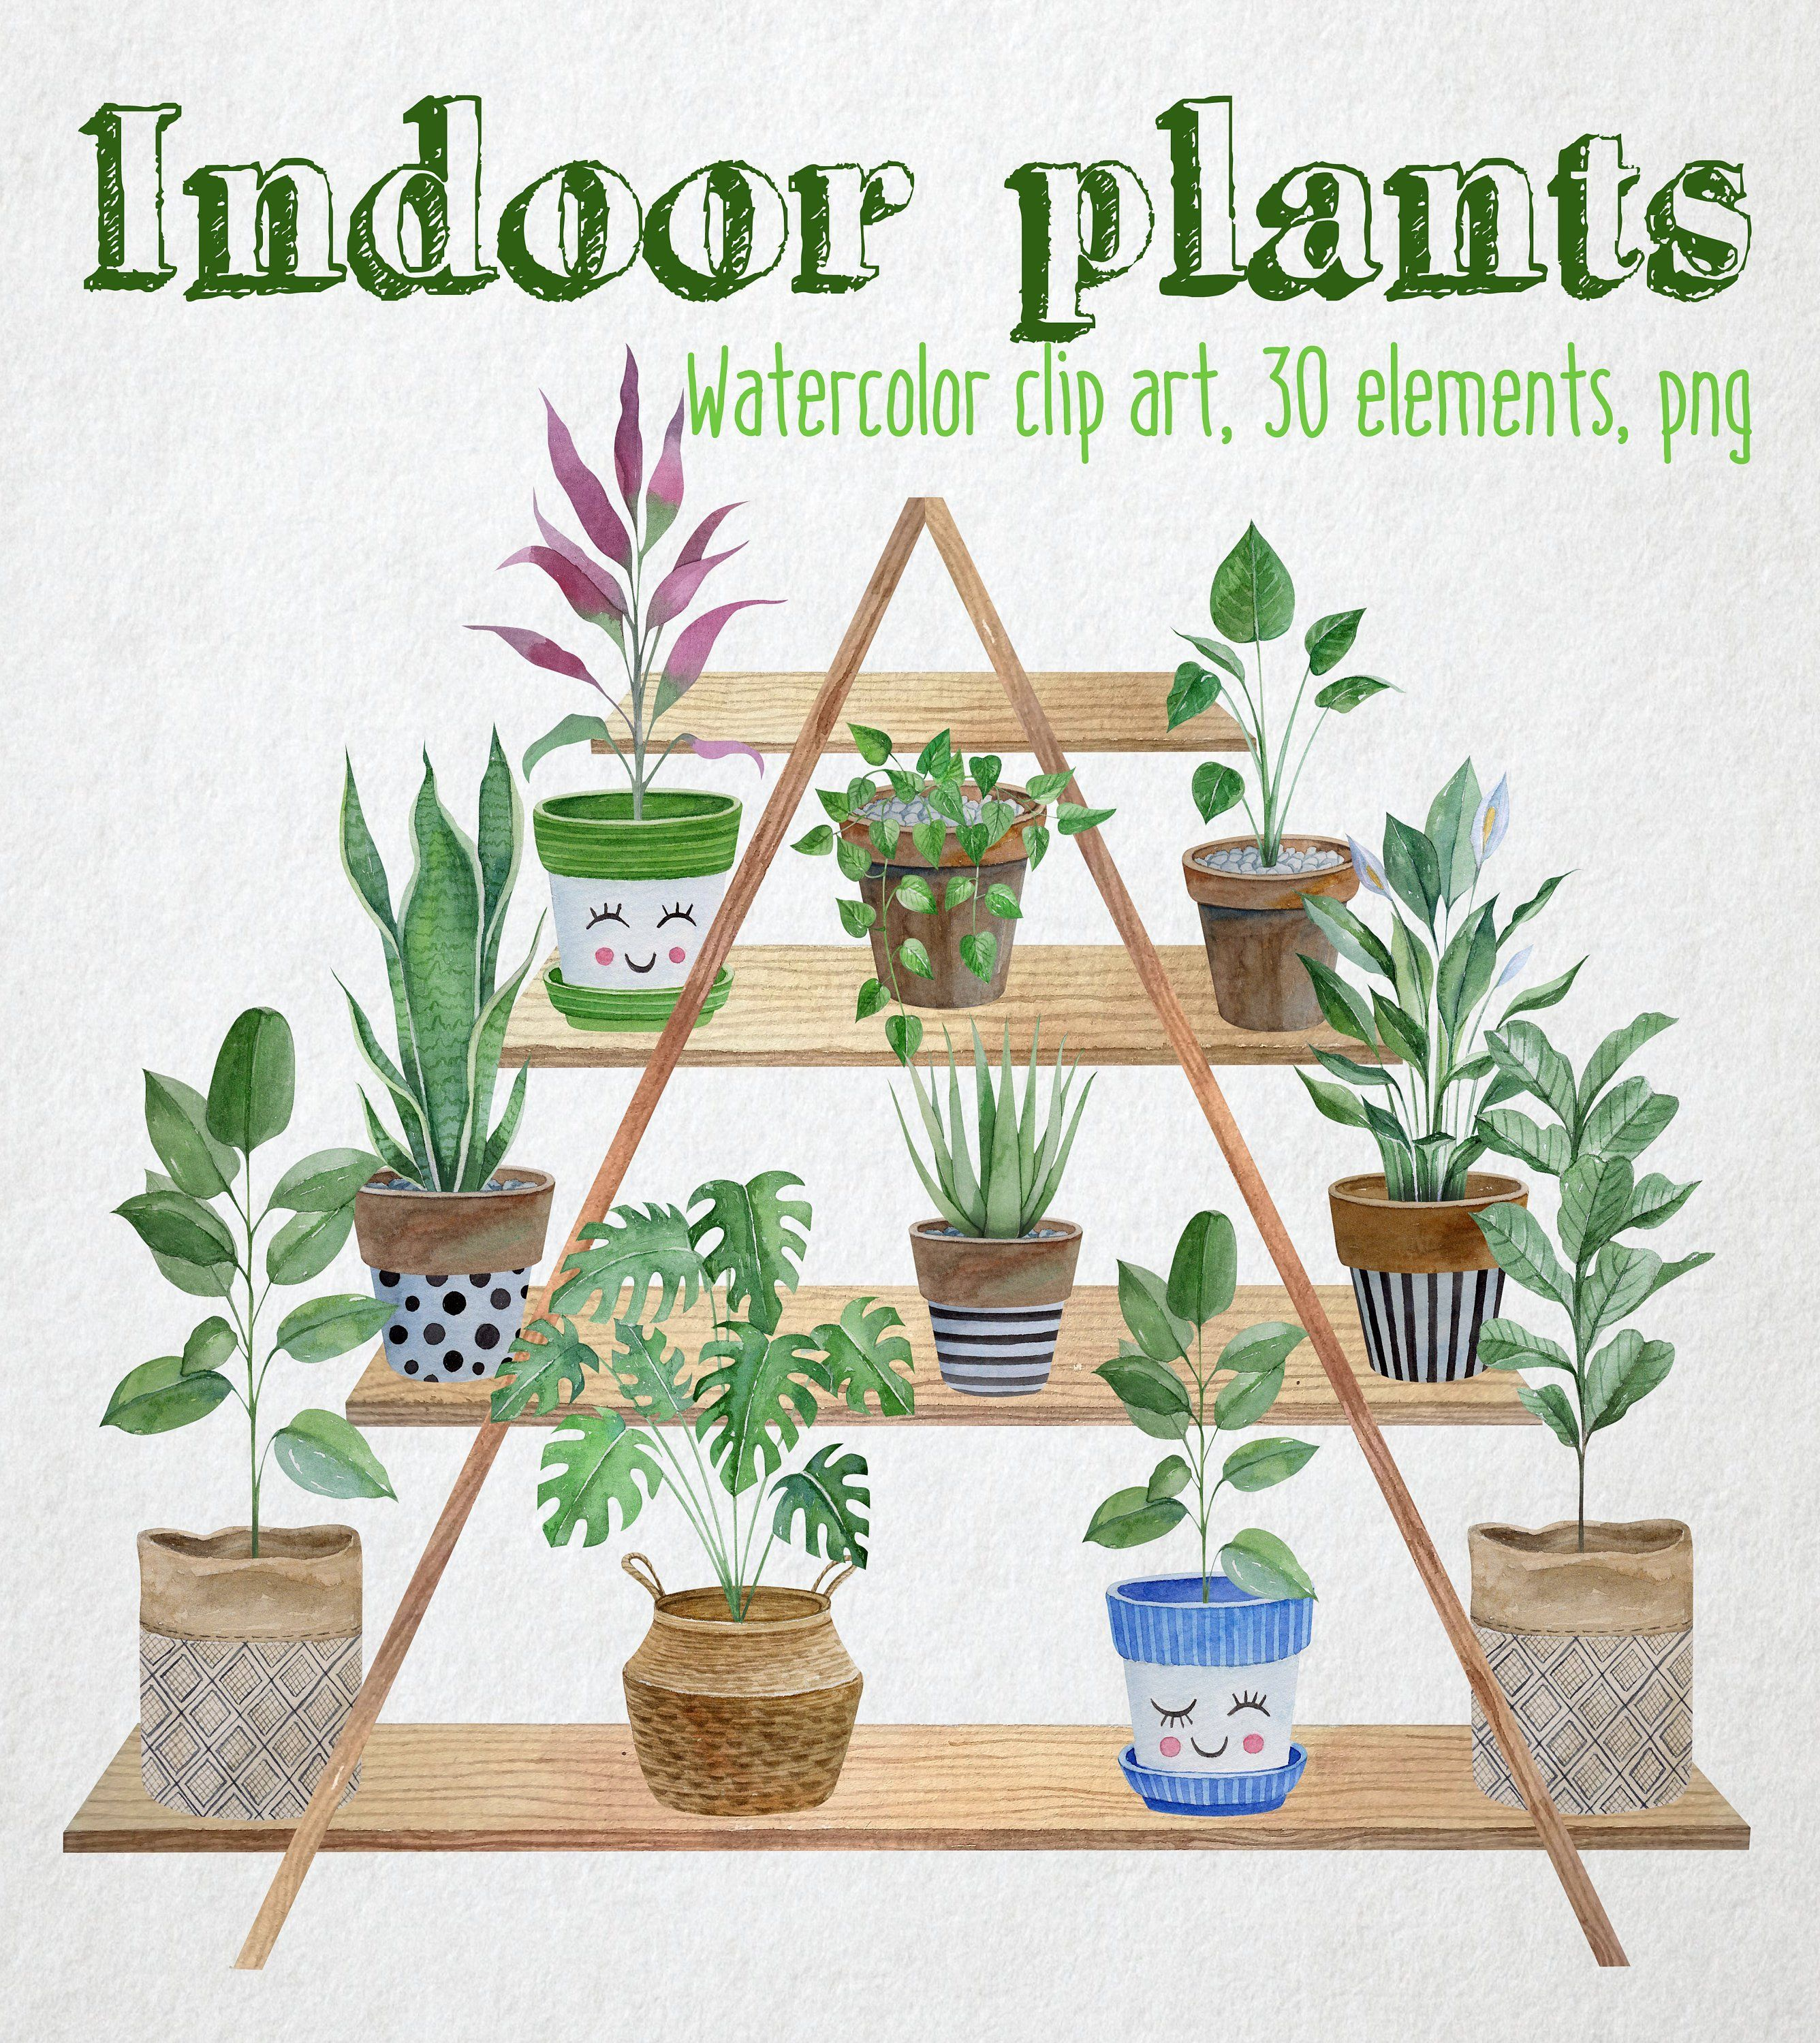 Indoor Plants watercolor clipart. Potted plants illustration. Watercolor house plants in ceramic pots -   17 indoor plants Background ideas